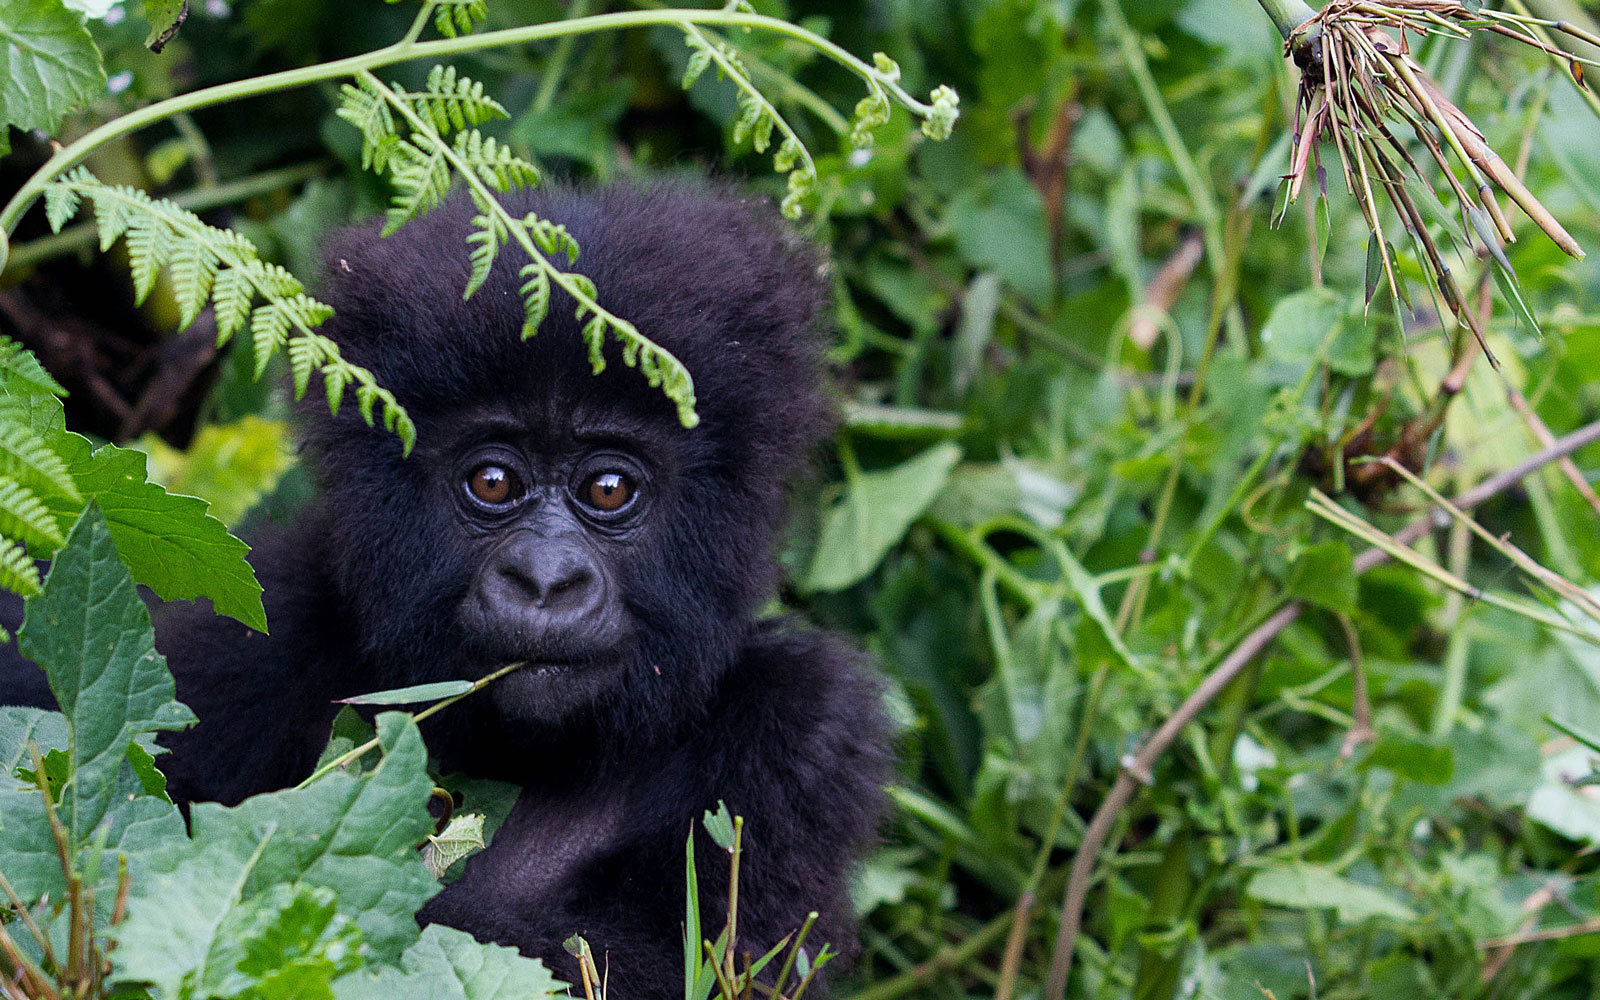 Trekking with gorillas in Rwanda just got more expensive